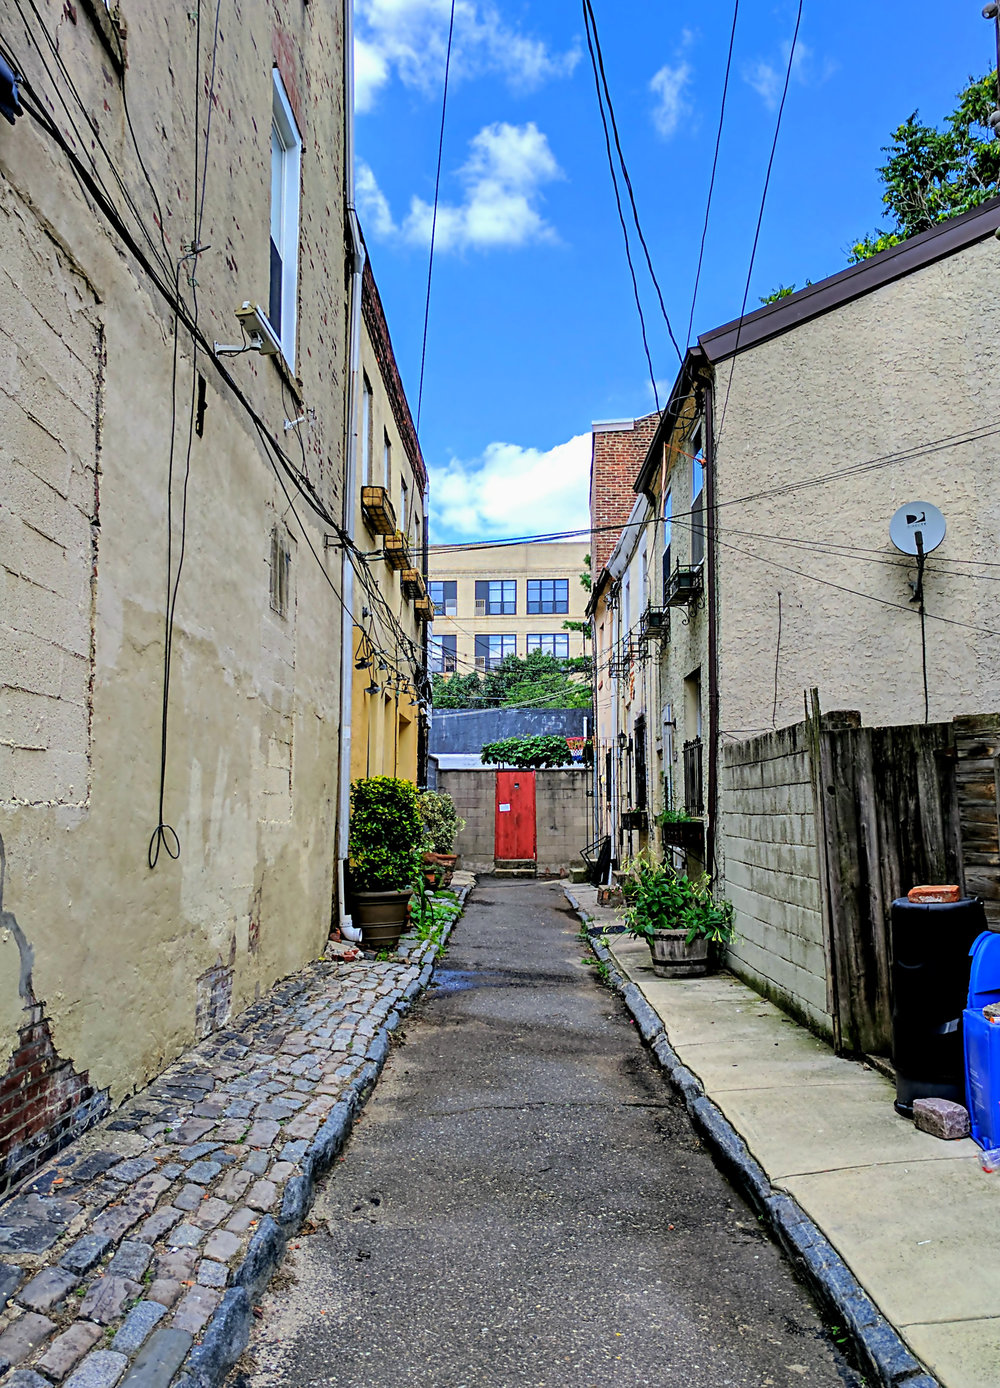 Red Door at the End